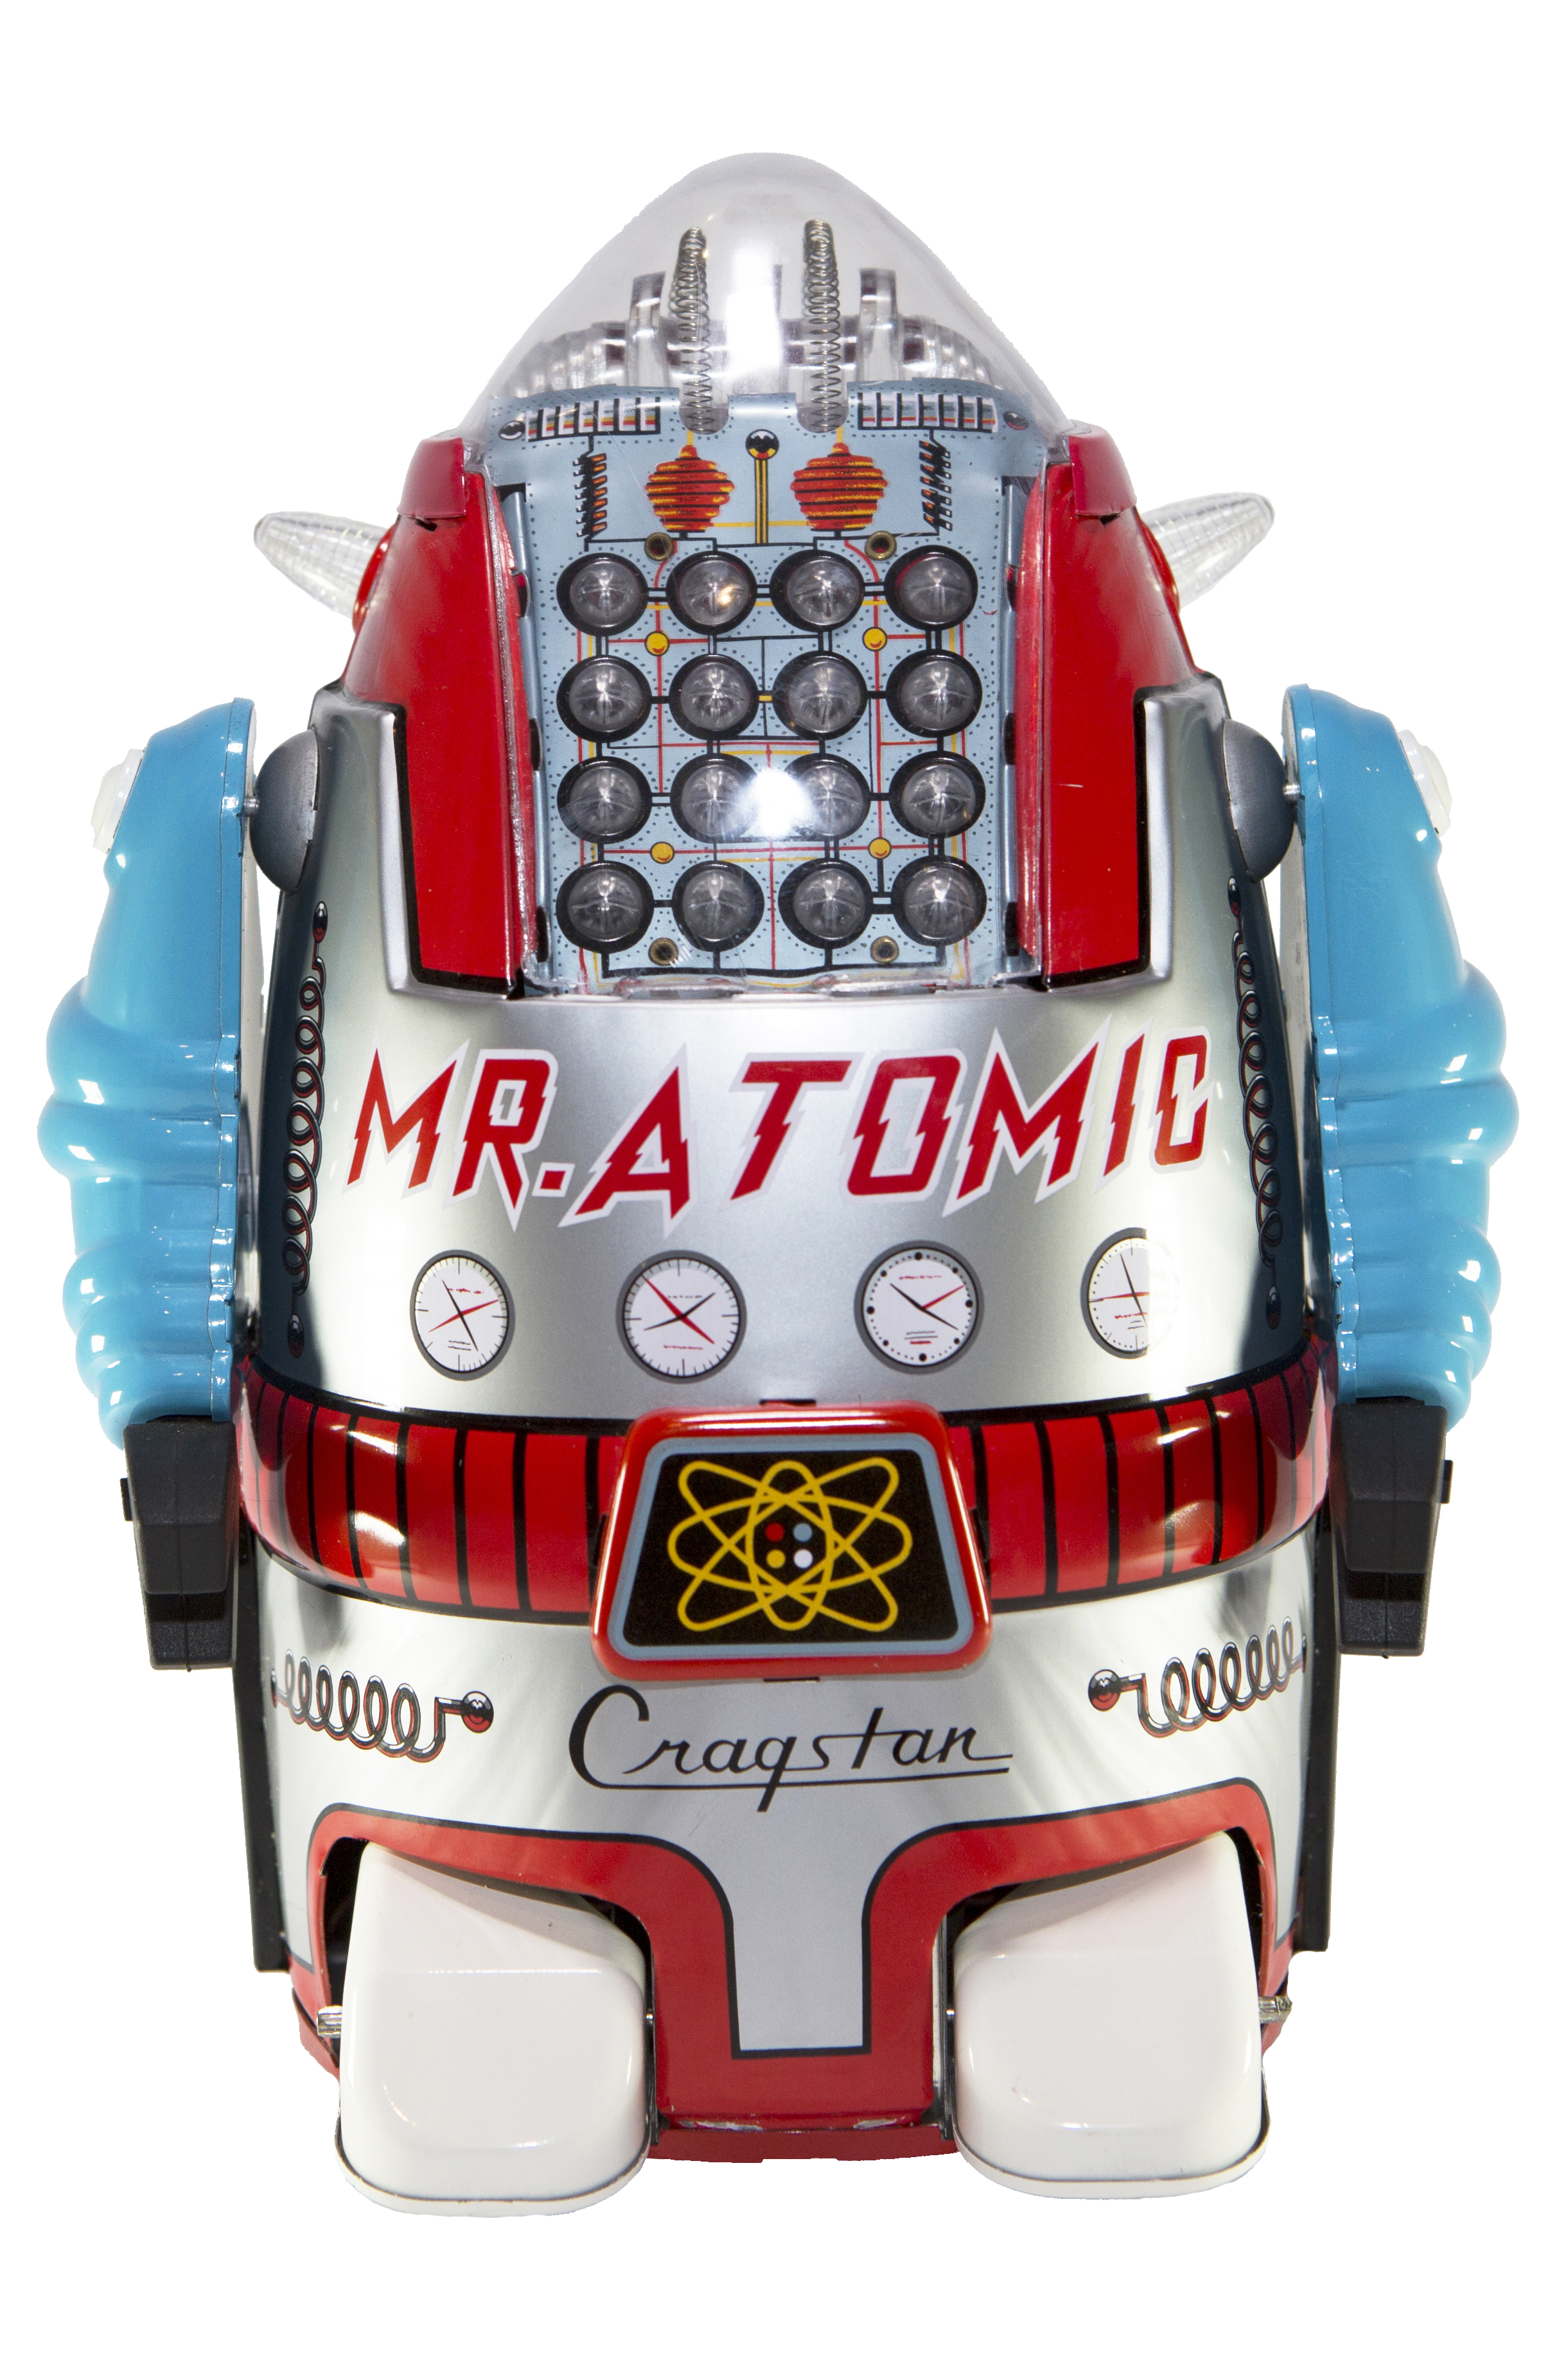 CRAGSTAN MR ATOMIC ELECTRONIC